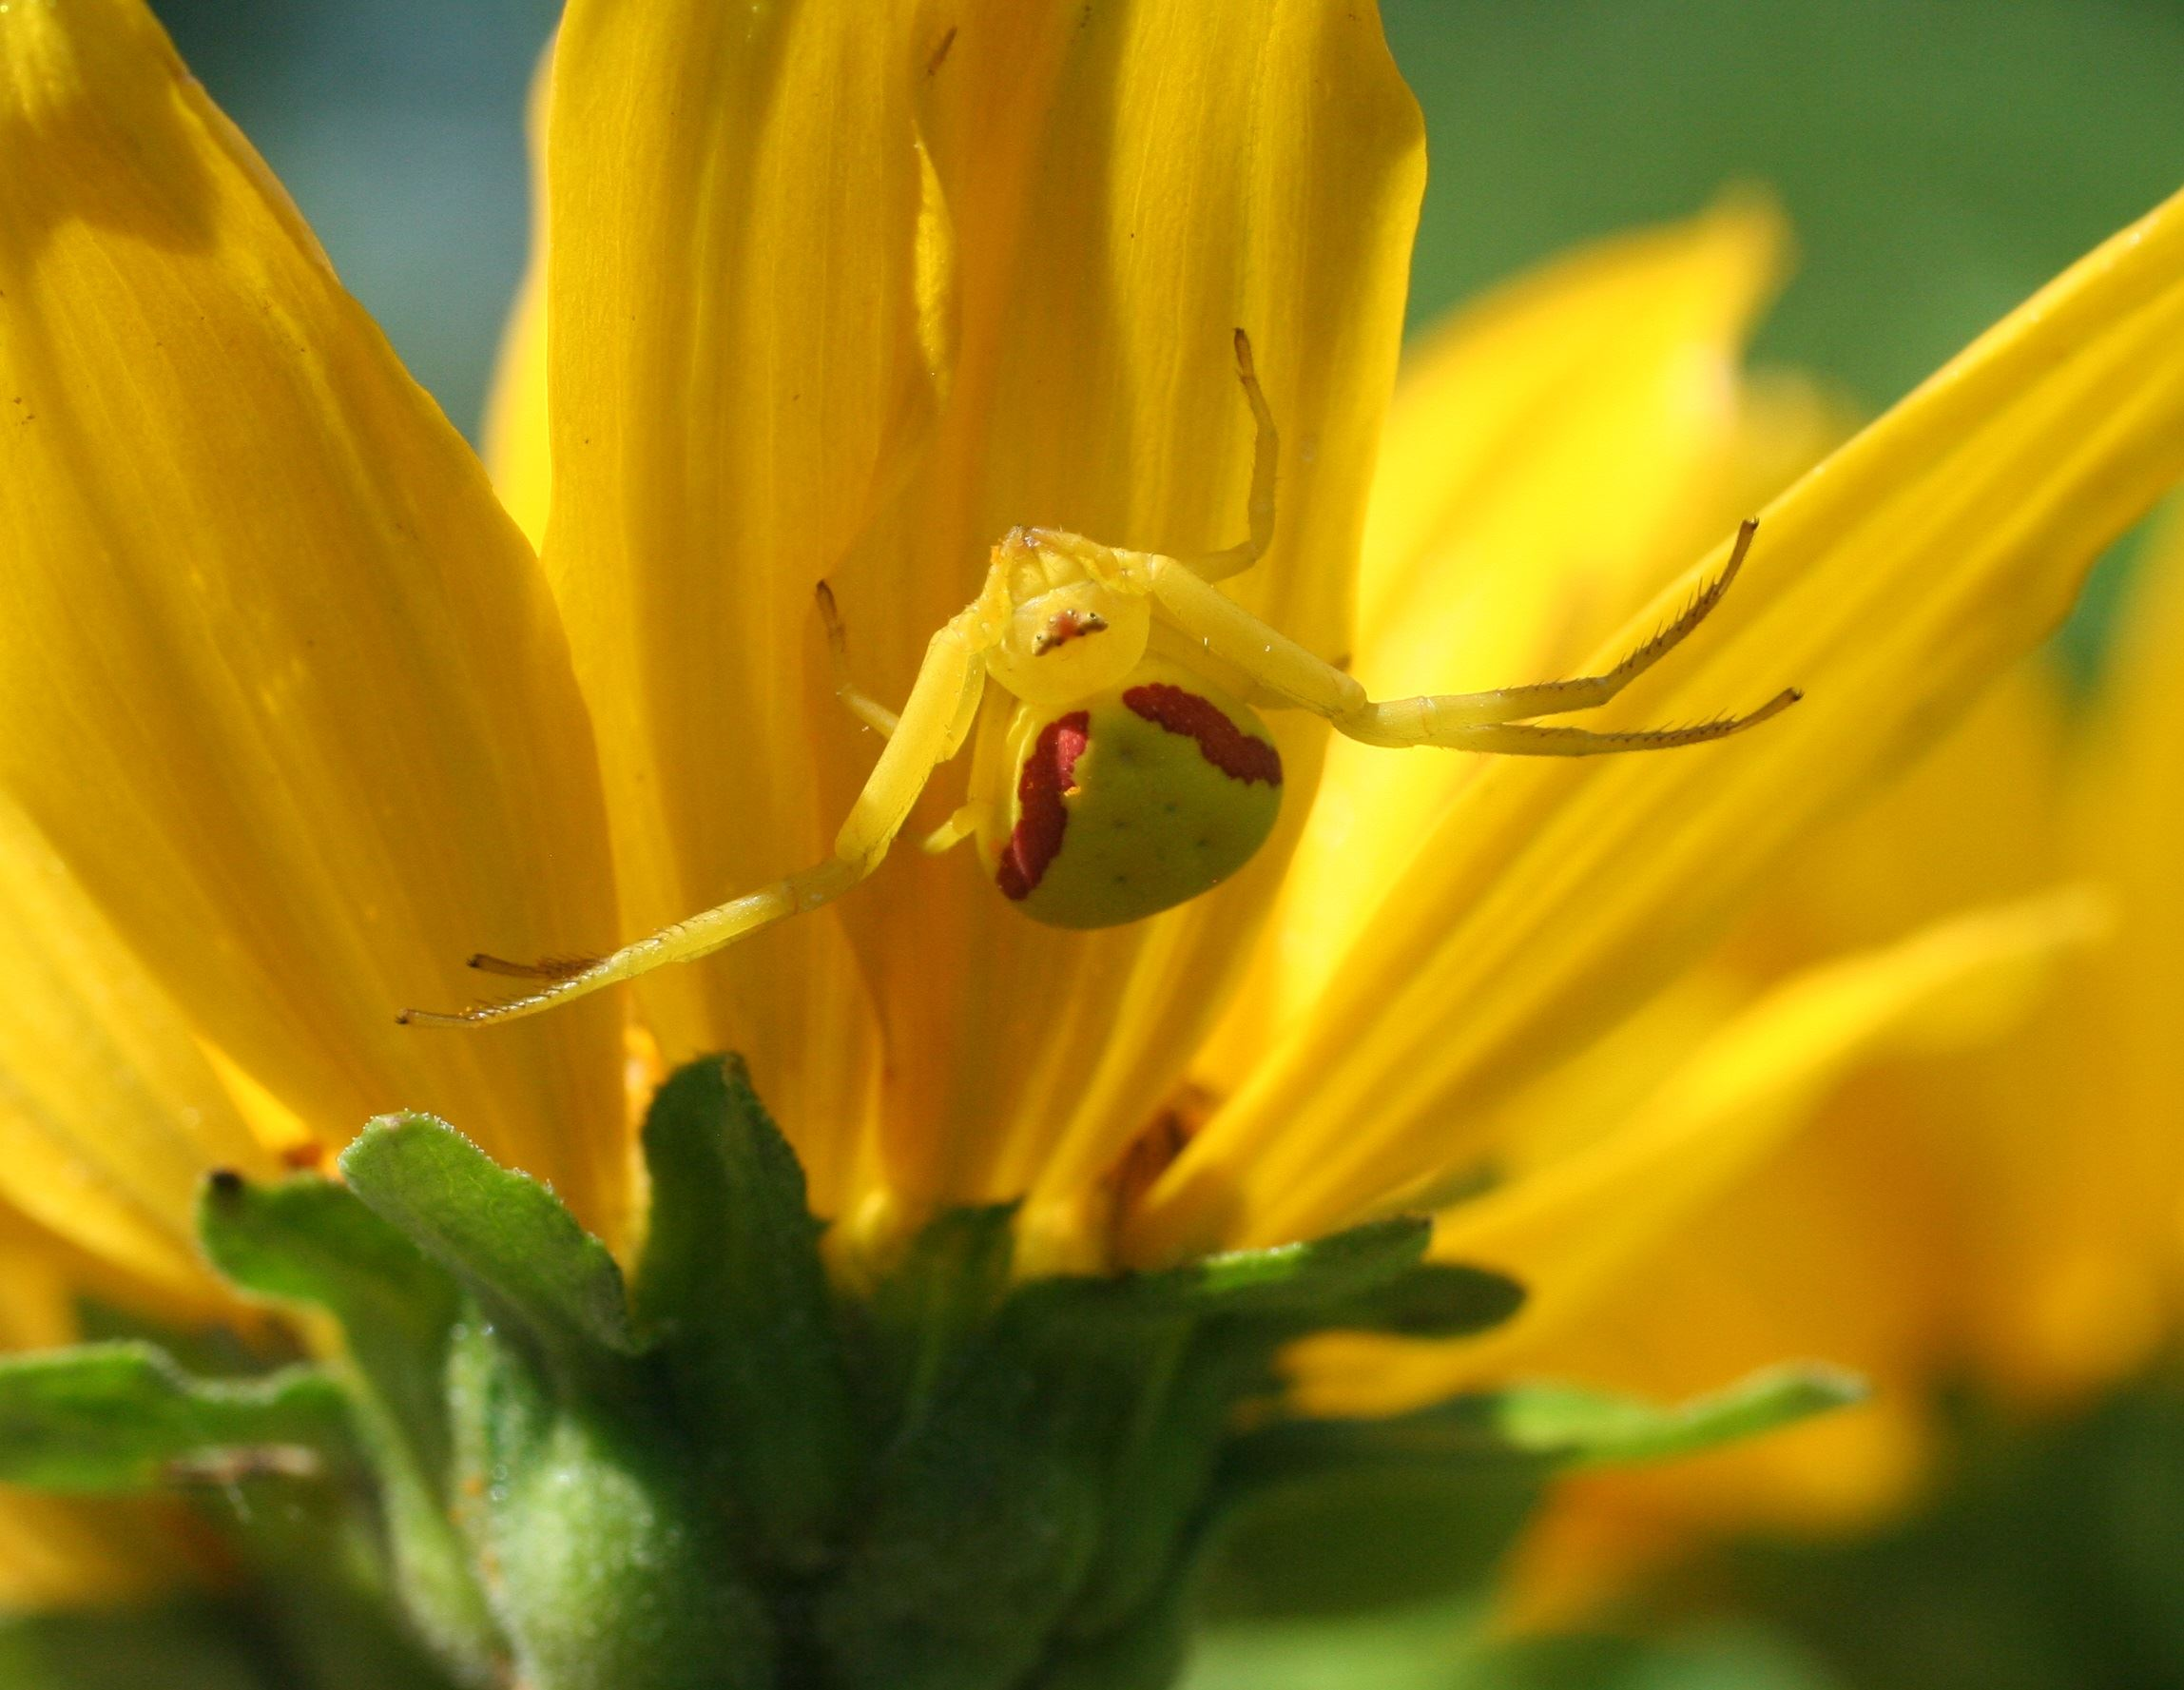 A yellow crab spider sitting under a yellow flower